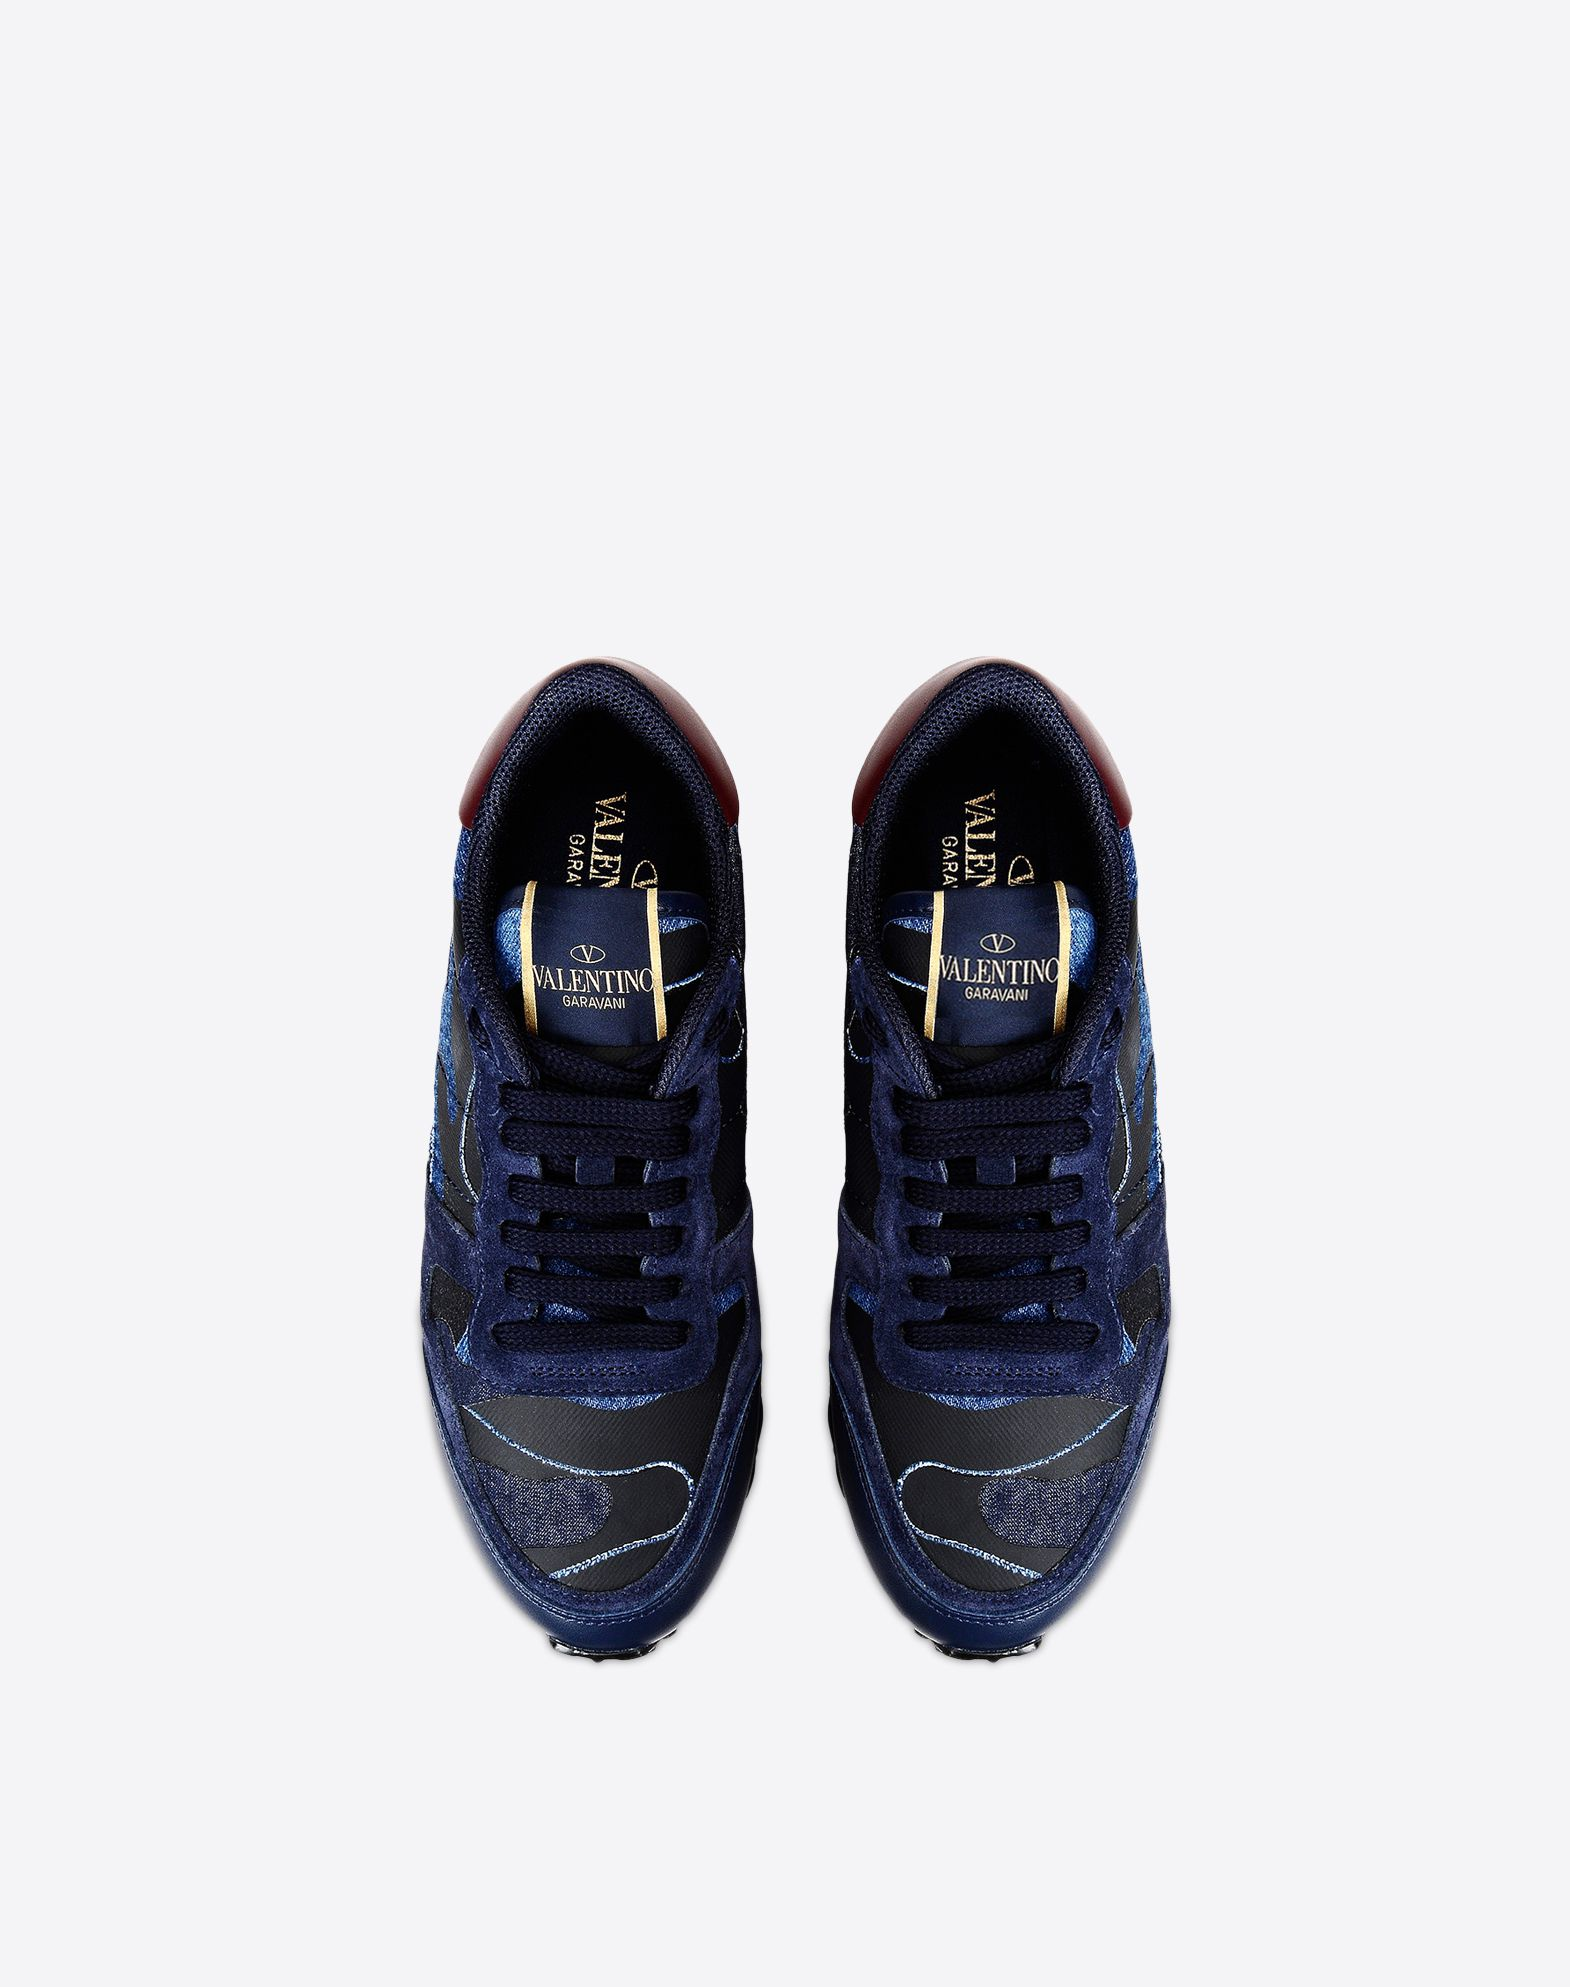 VALENTINO Logo Rubbery effect Sueded Denim Multicolour Pattern Laces Rubber cleated sole Round toeline  11063099pb